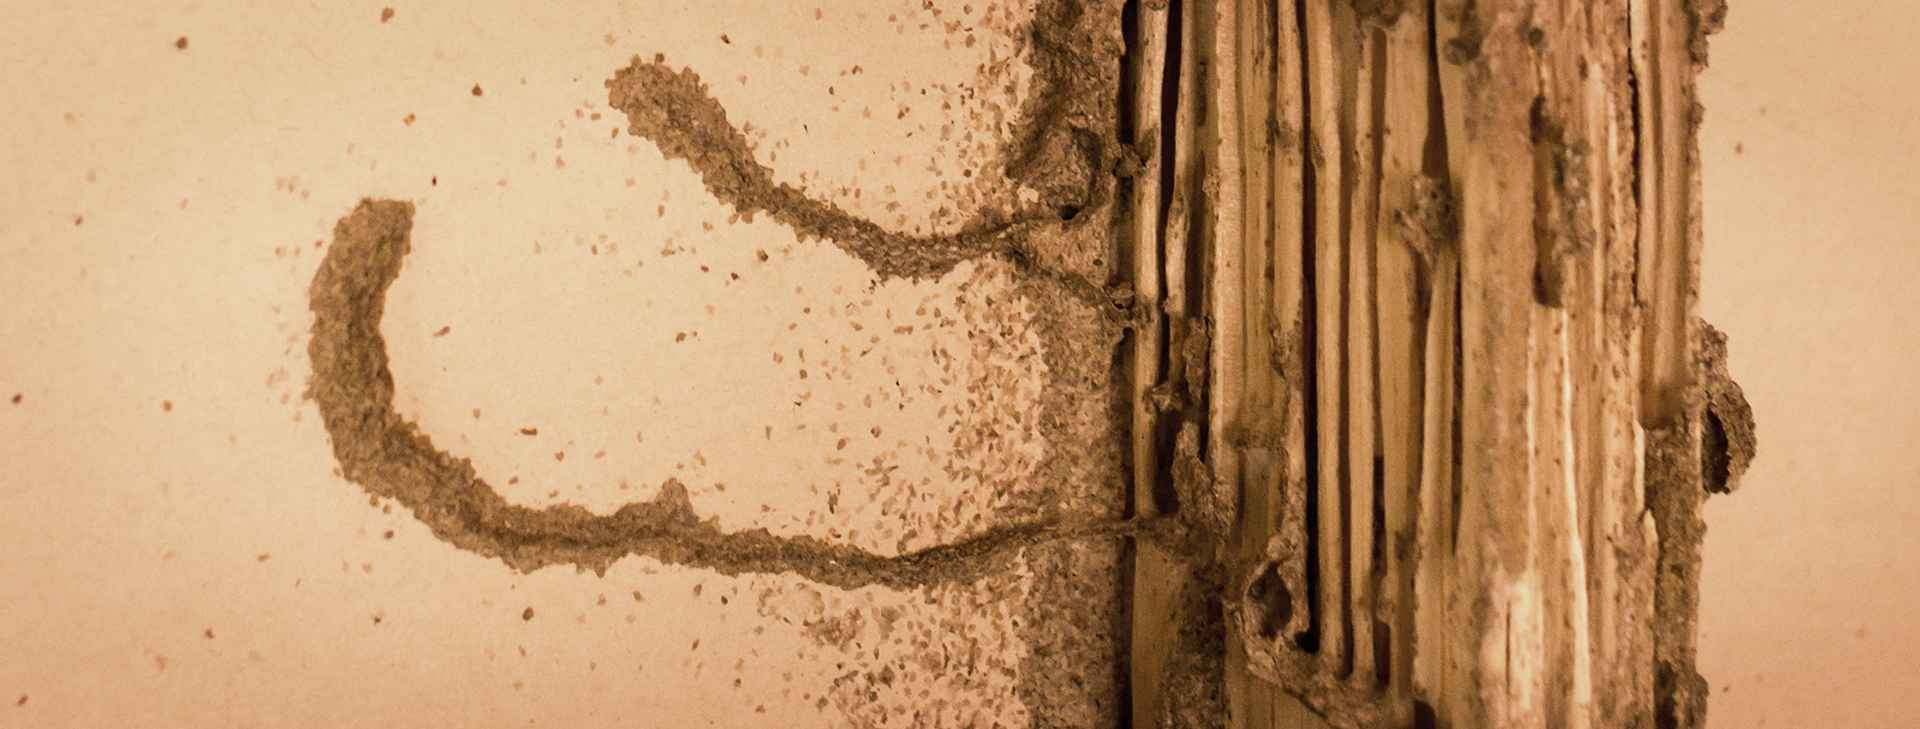 termite damage cropped